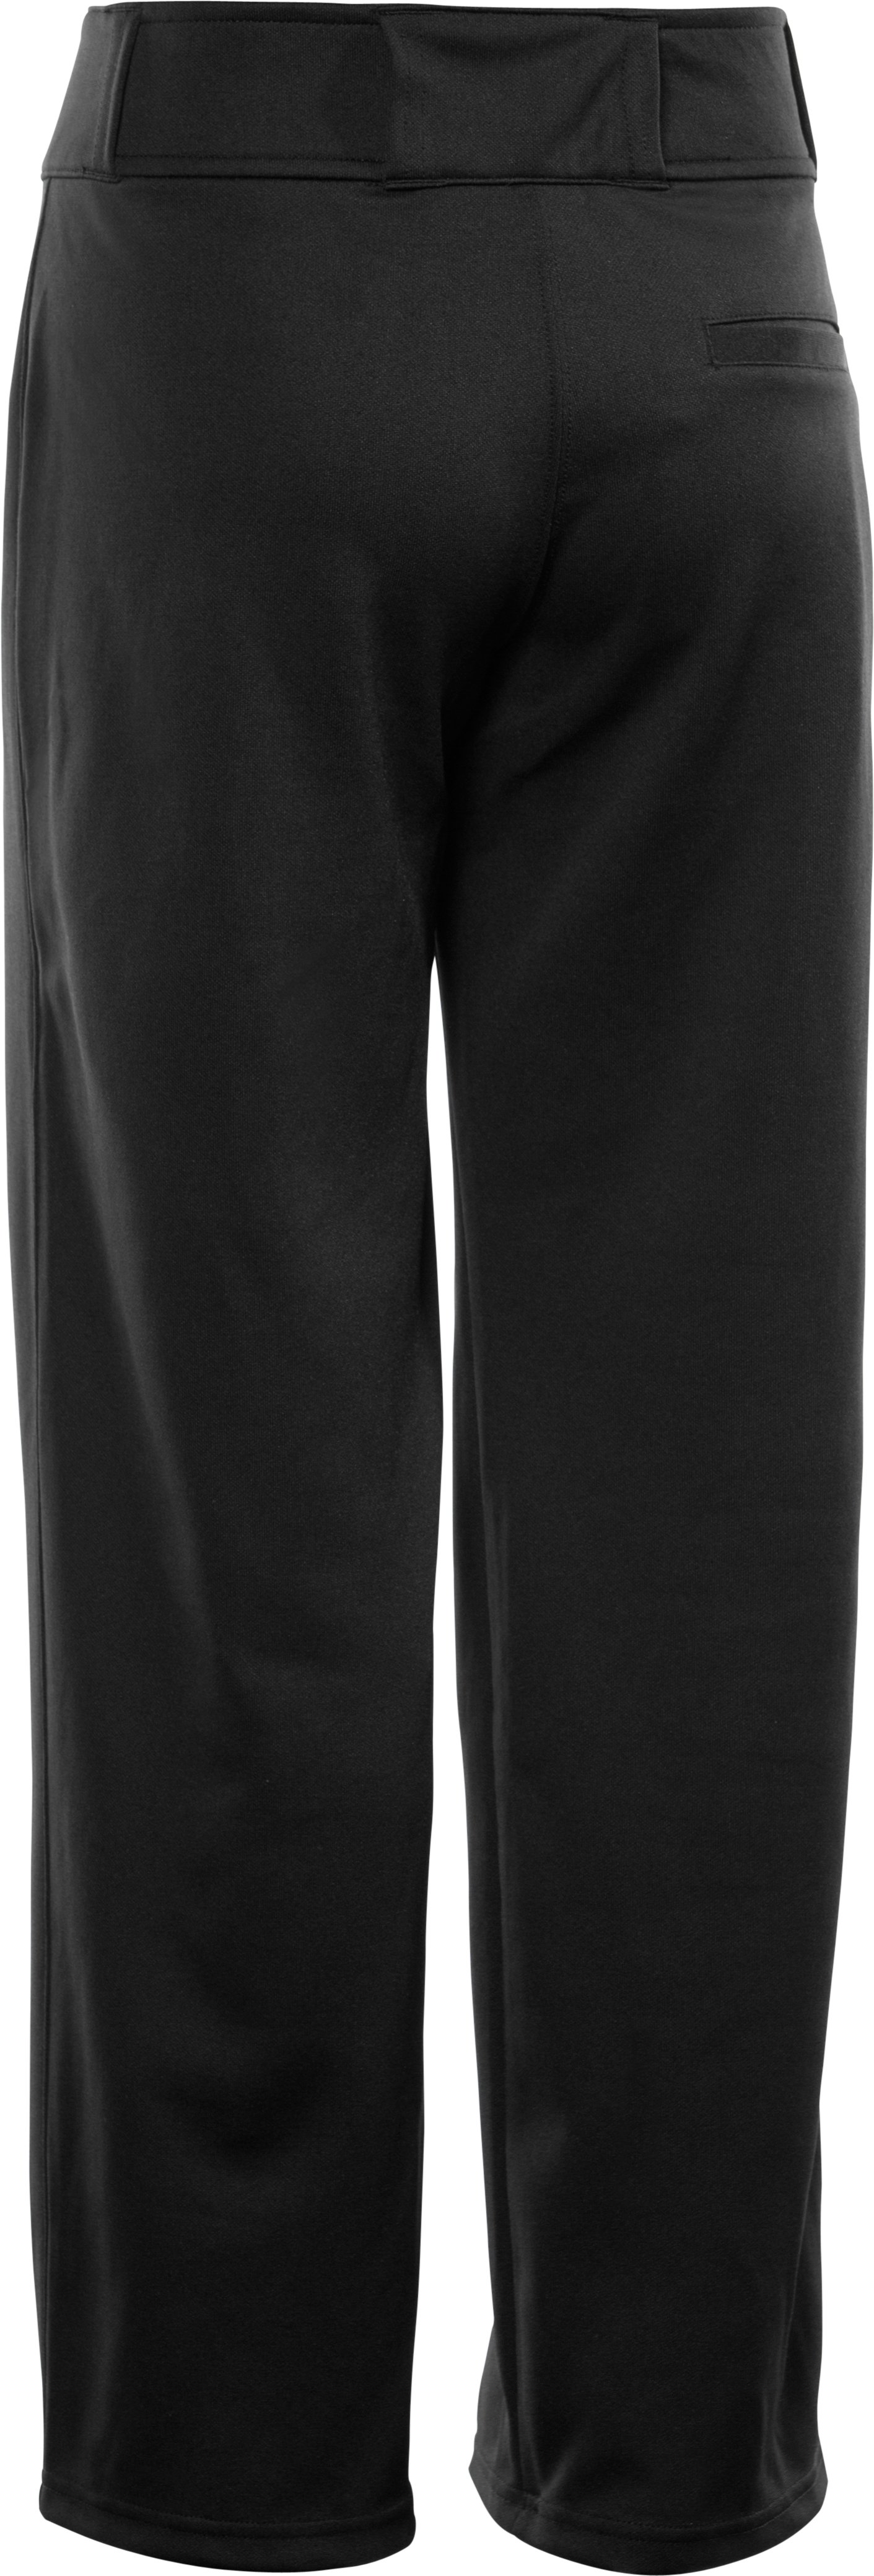 Boys' UA Clean Up Baseball Pants, Black